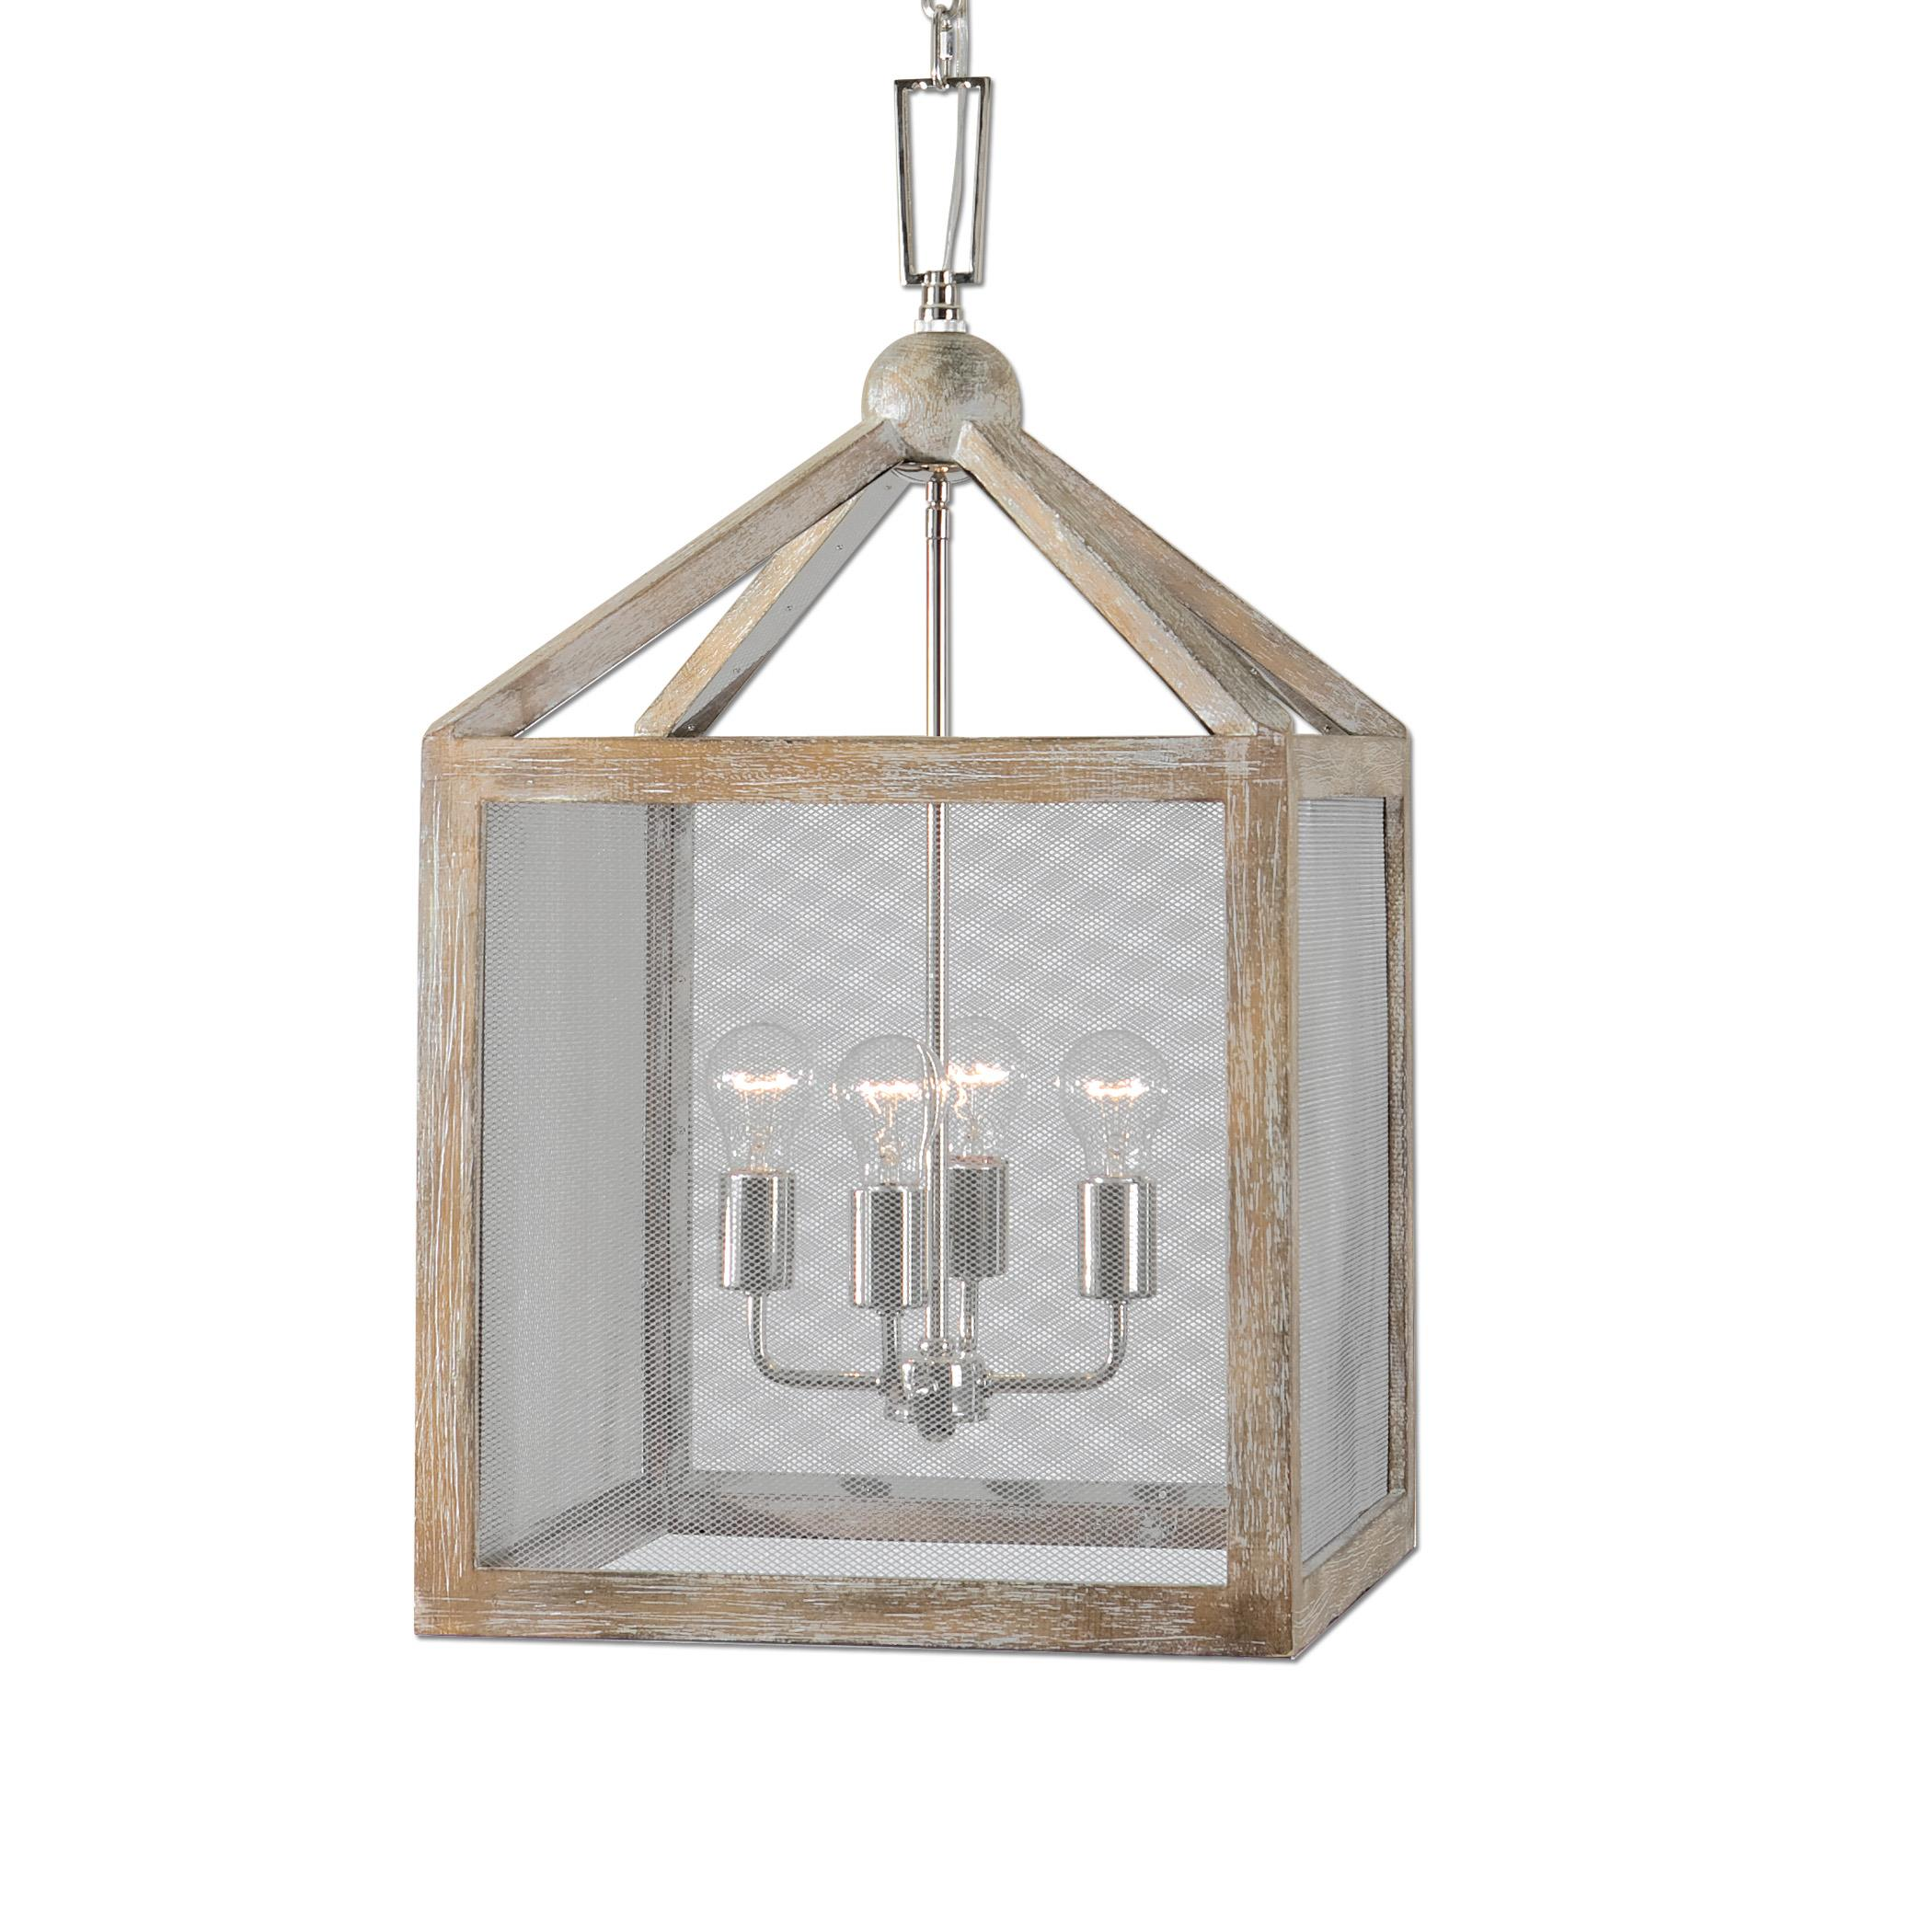 Lighting Fixtures - Pendant Lights Nashua 4 Light Wooden Lantern Pendant by Uttermost at Stuckey Furniture